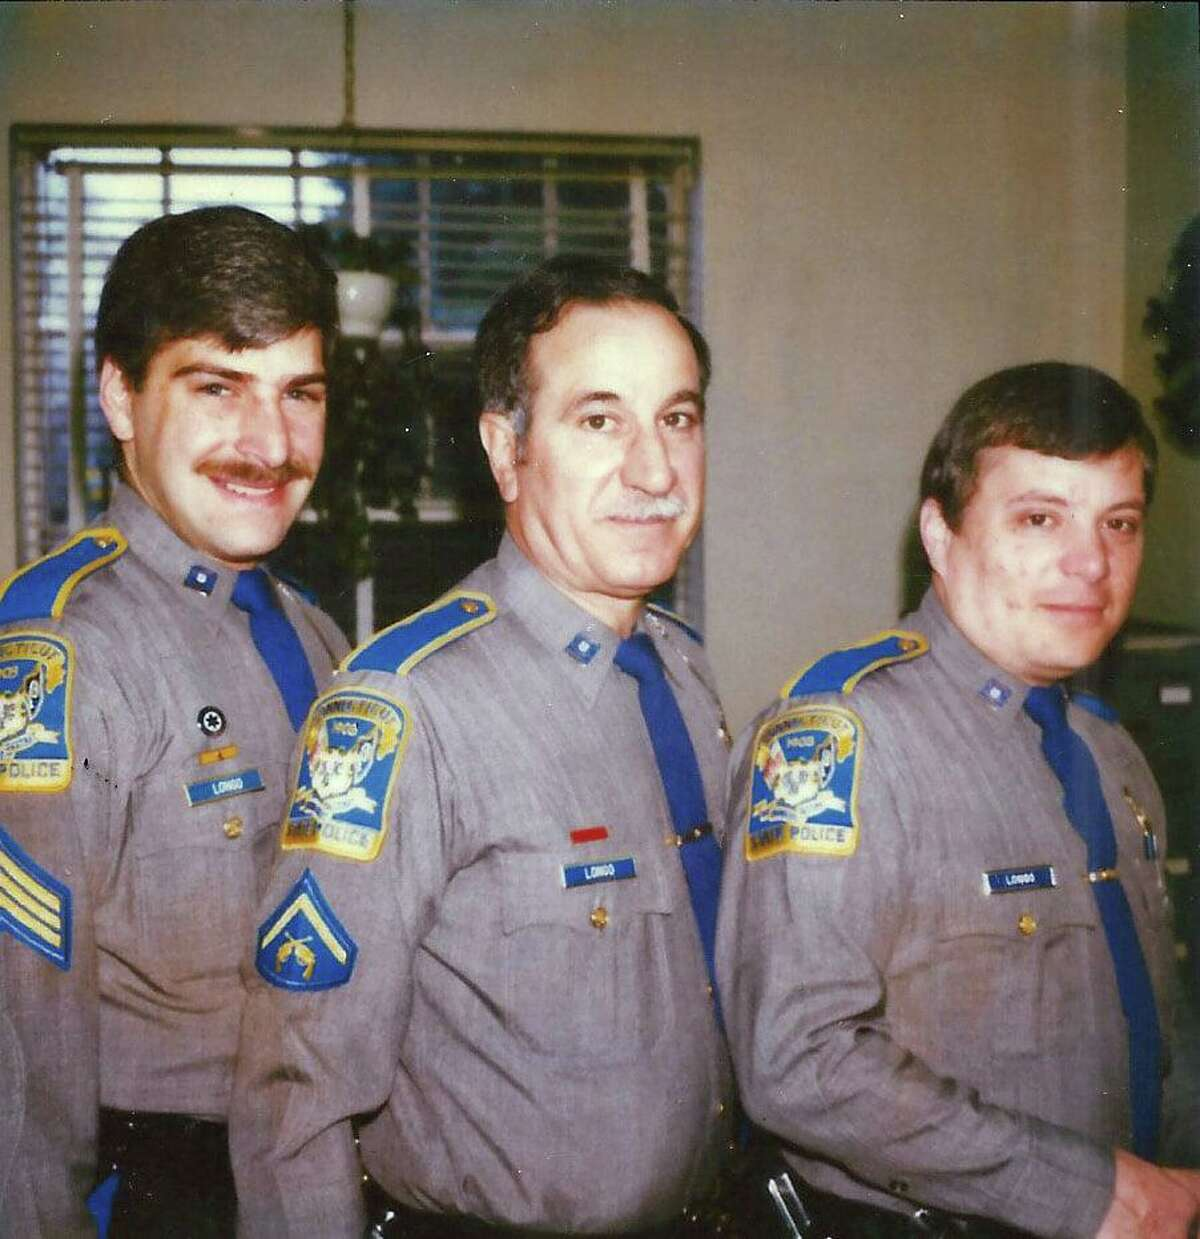 """Connecticut State Police Sgt. William """"Billy"""" Longo with the other two Longos at Troop C with Jerry in the center and Nick on the right."""